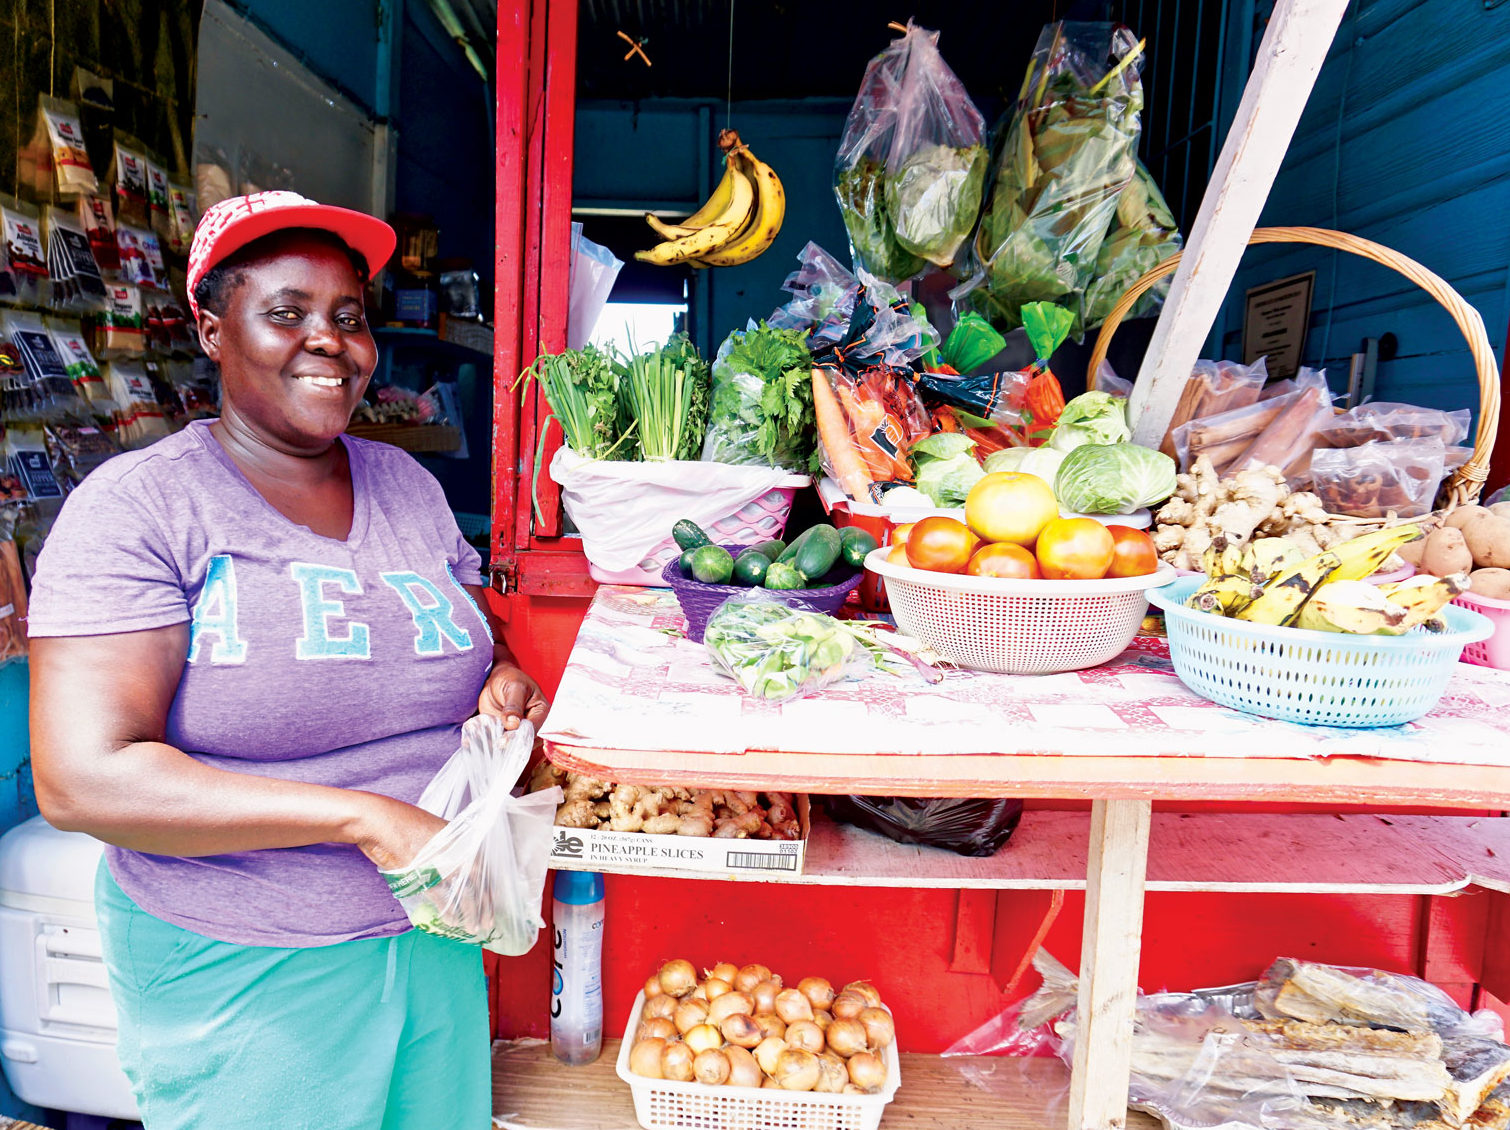 Lesley is always happy to help in Carriacou's Fruit Stand. Photo by Jan Hein